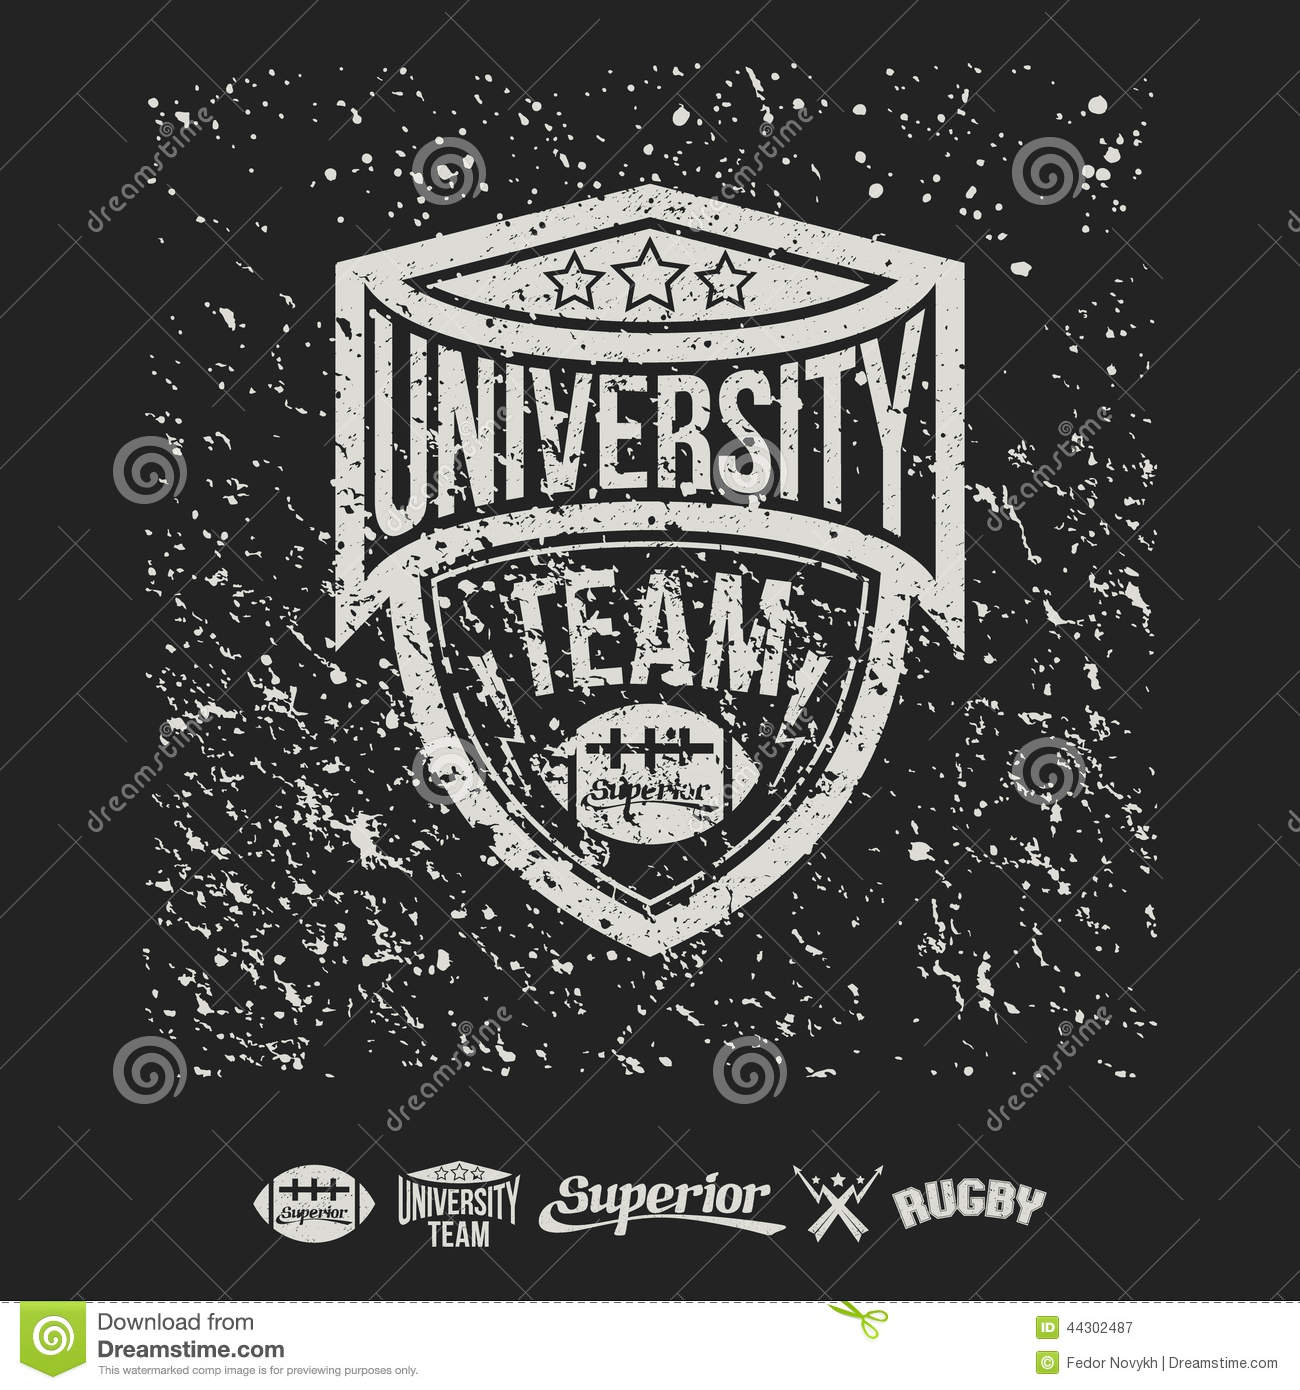 Design t shirt universiti - Design T Shirt University Rugby Emblem University Team And Design Elements Royalty Free Stock Photography